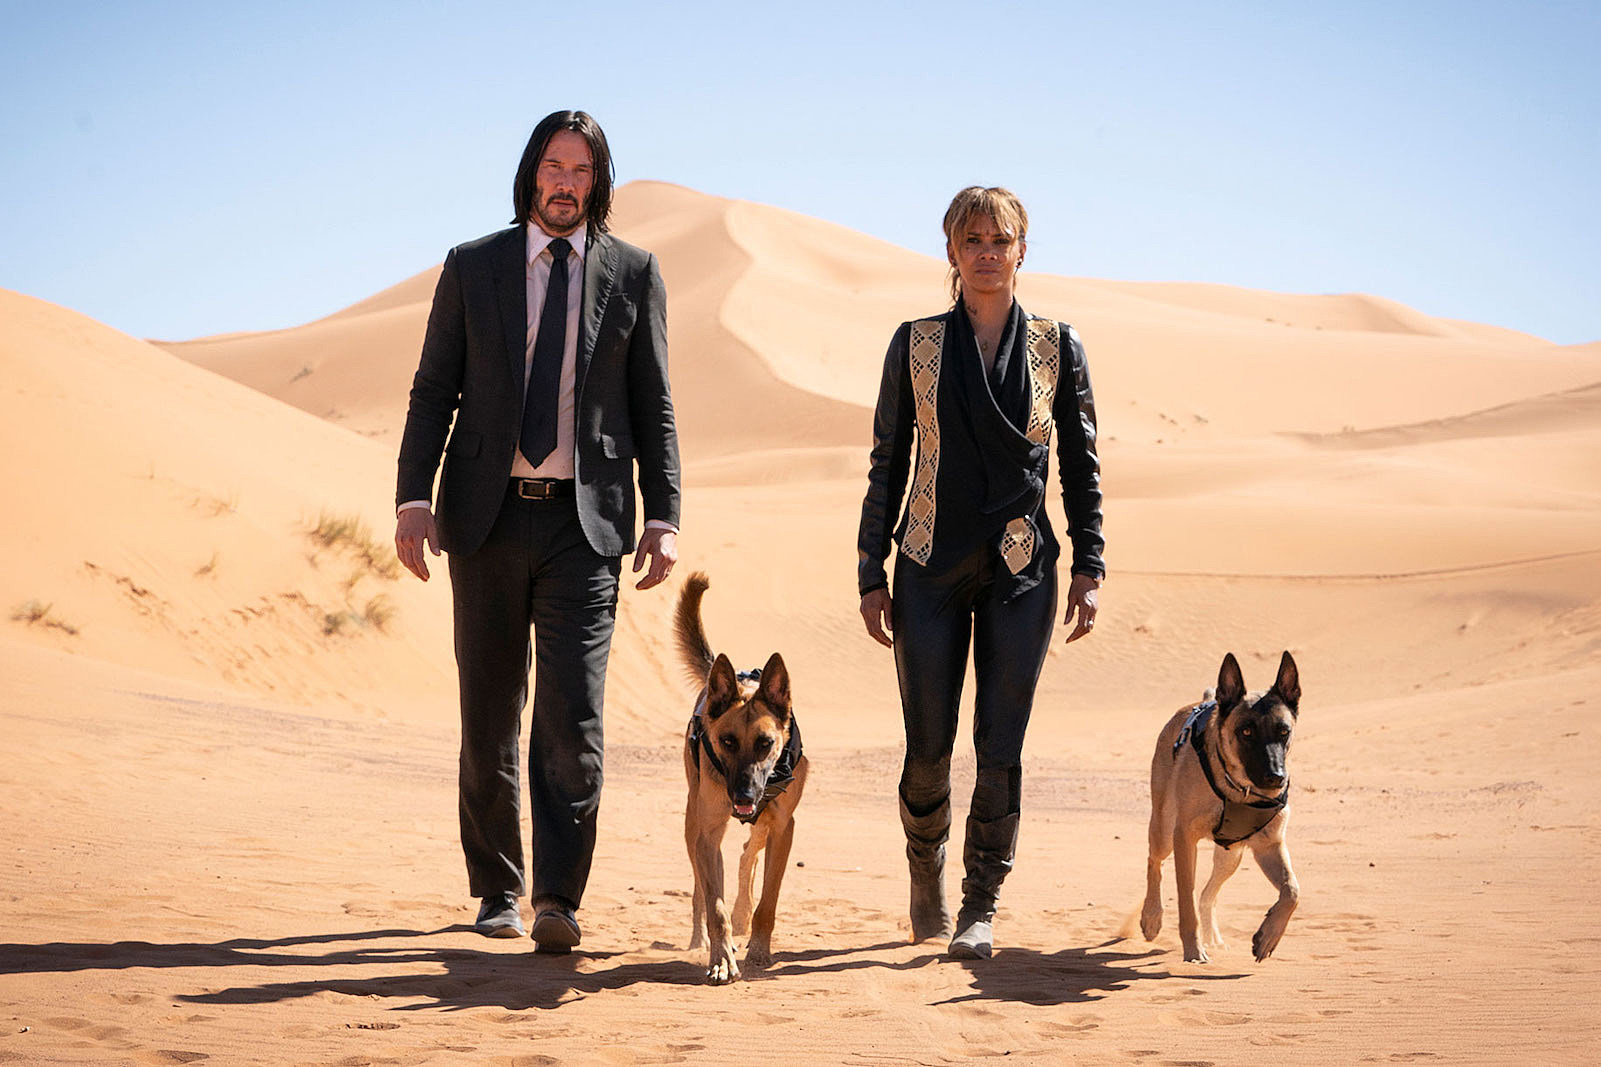 john wick full movie free download with english subtitles